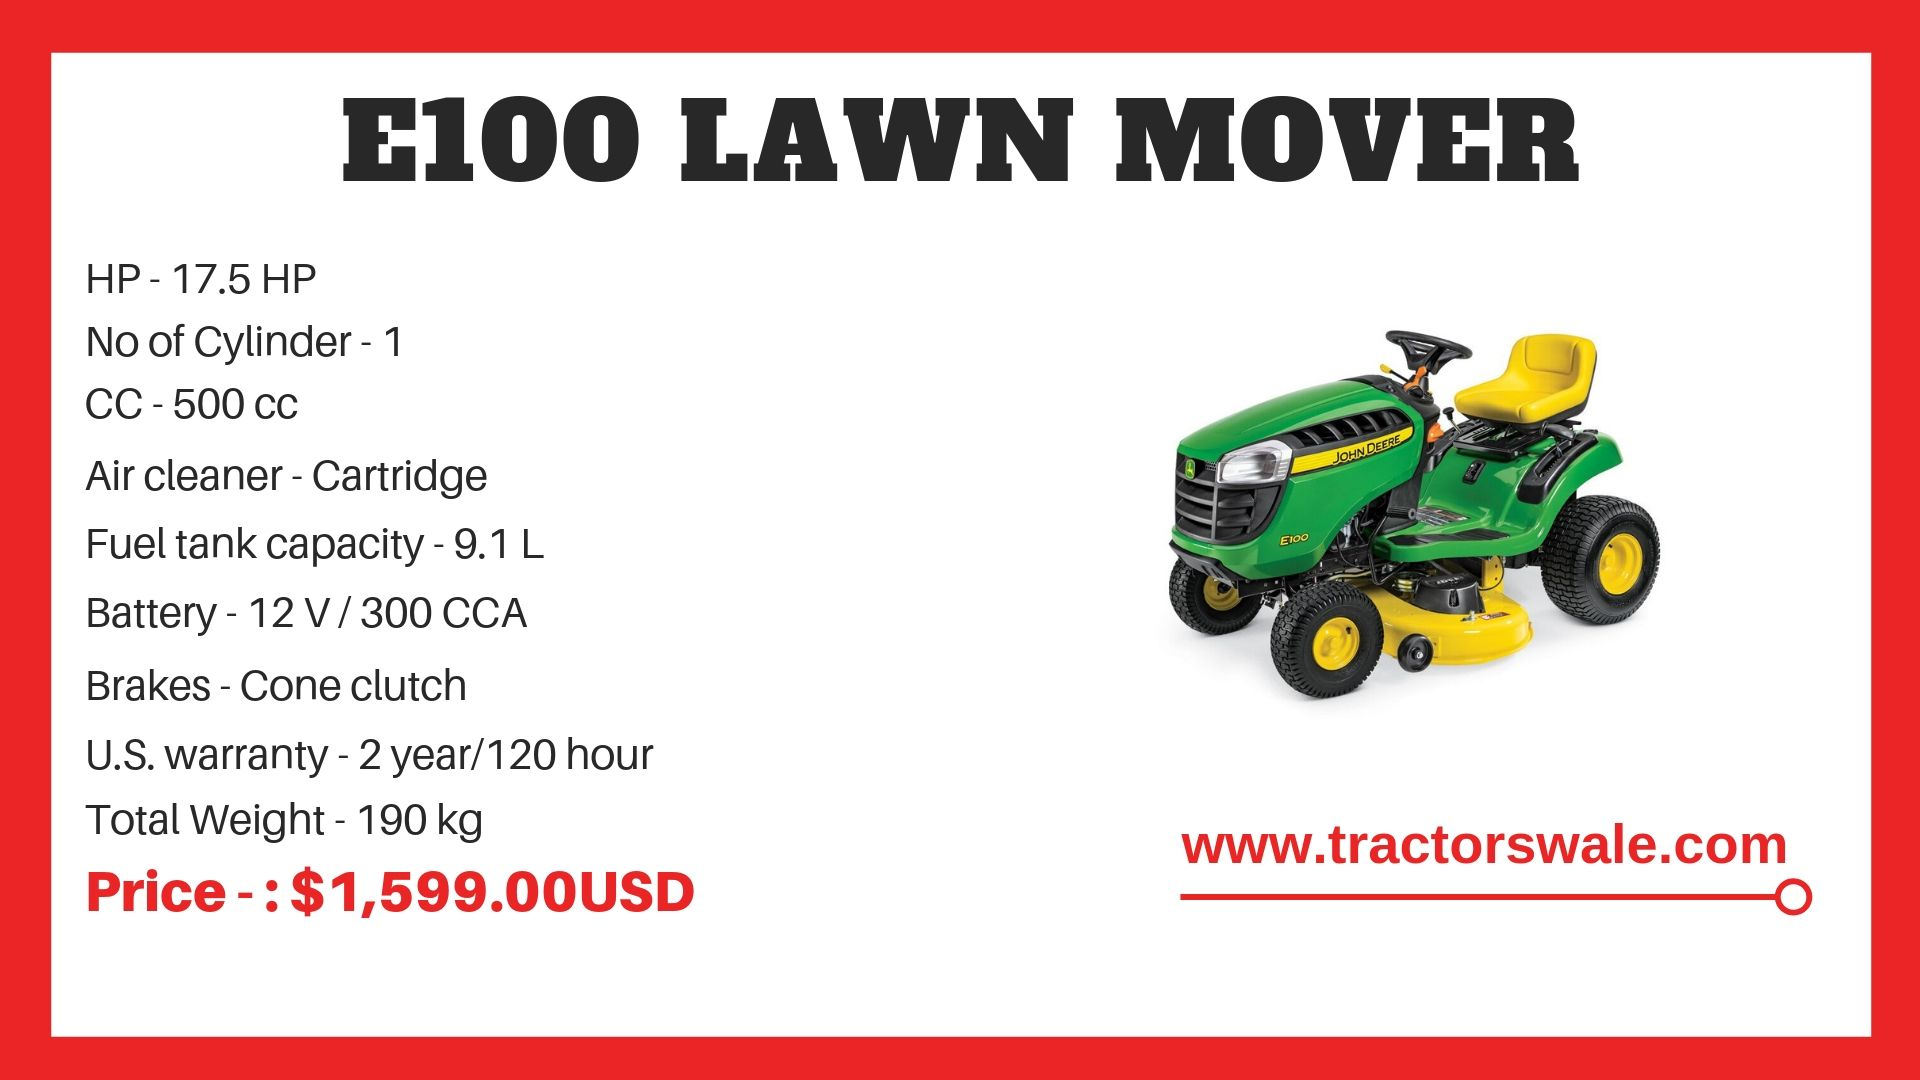 Lawn tractor E100 Specifications